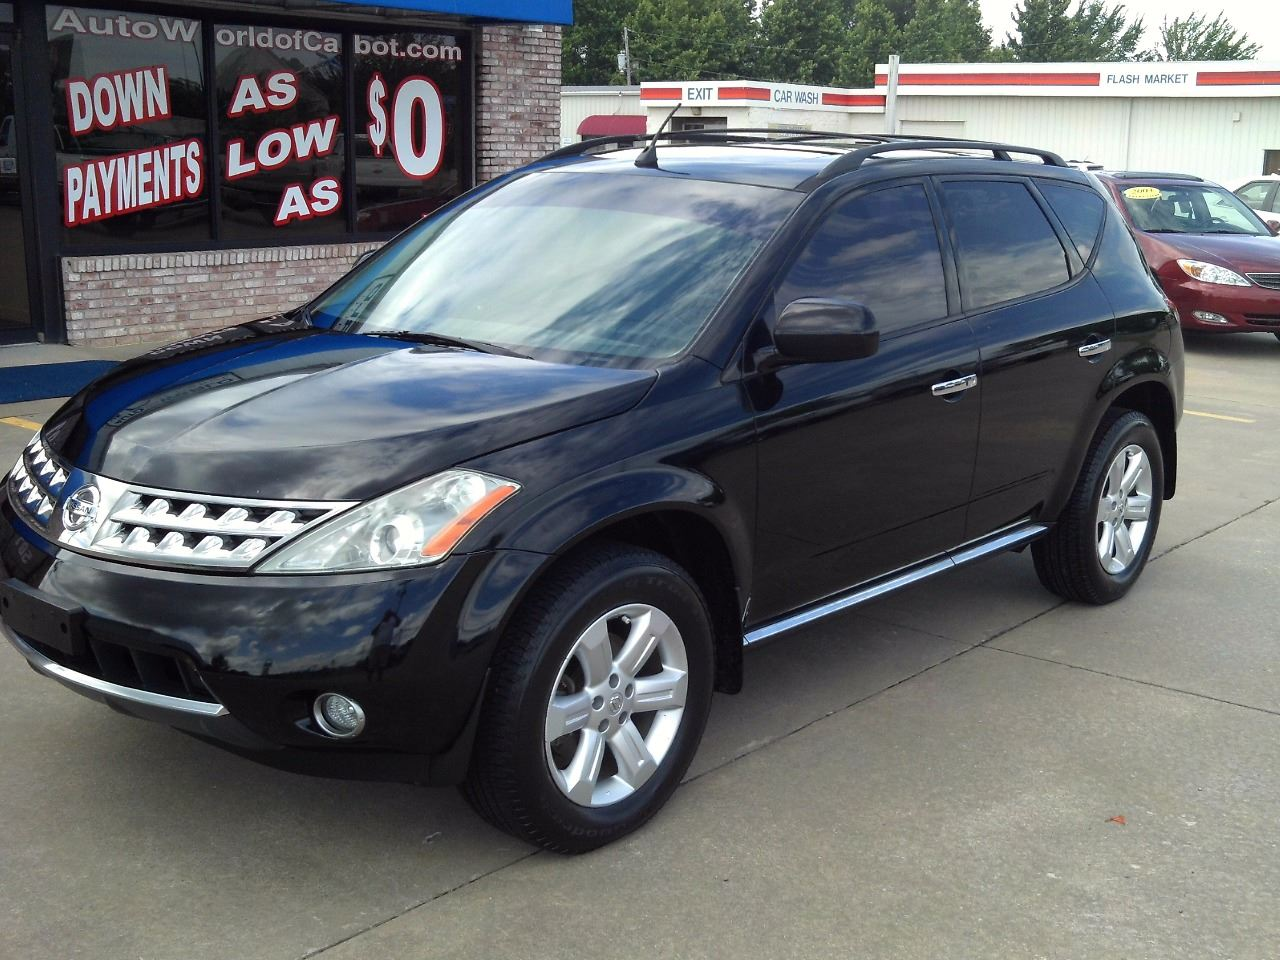 2006 nissan murano sl 4dr suv in cabot ar autoworld of cabot. Black Bedroom Furniture Sets. Home Design Ideas